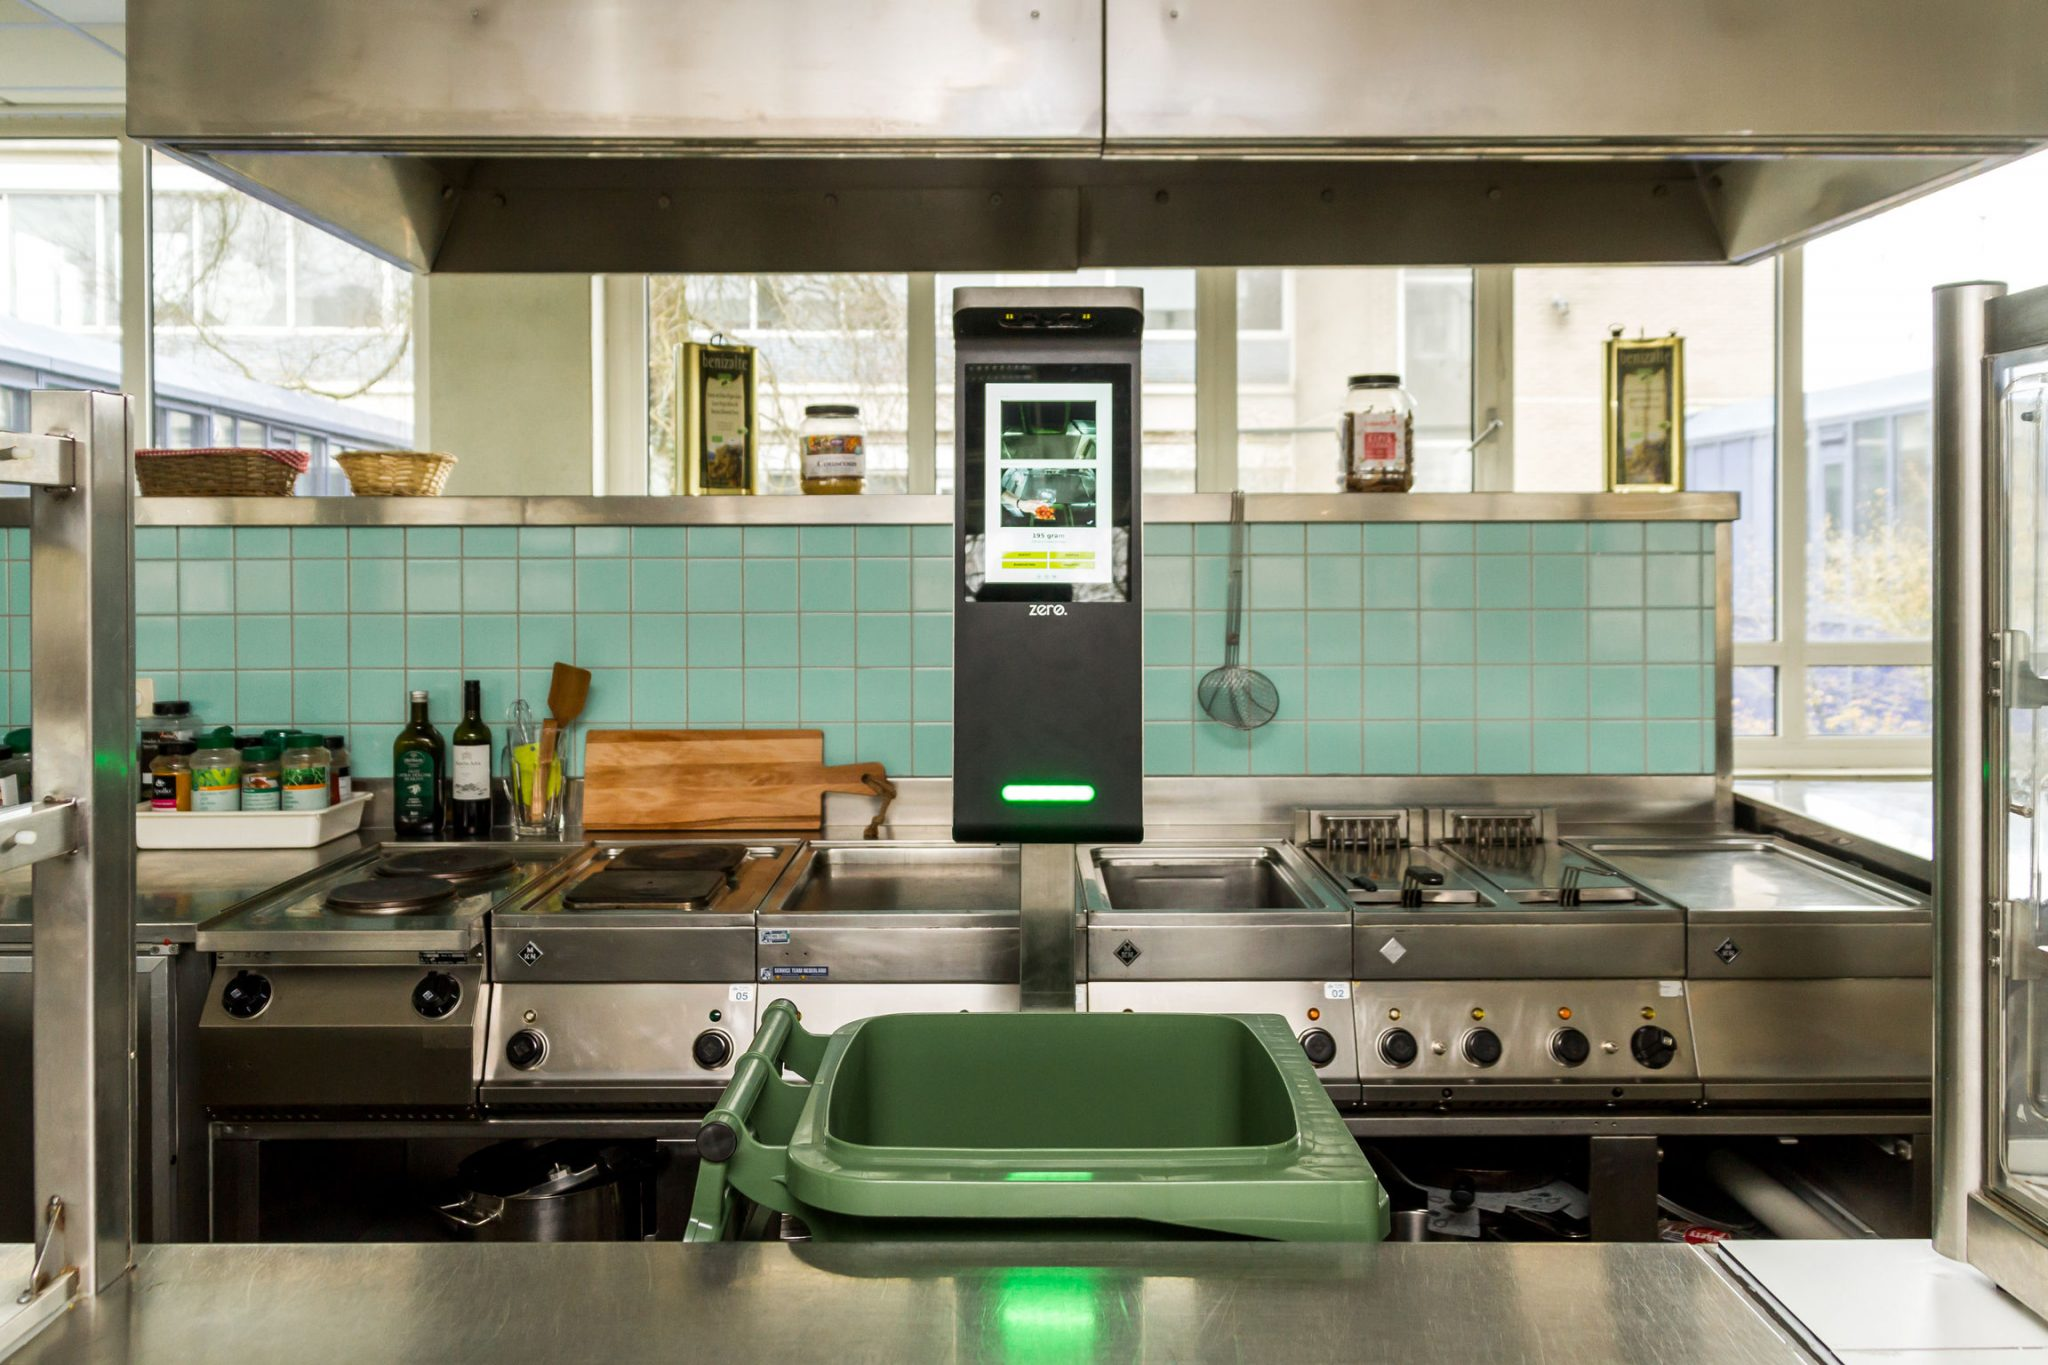 Orbisk monitor is working in a canteen and by analyzing food waste